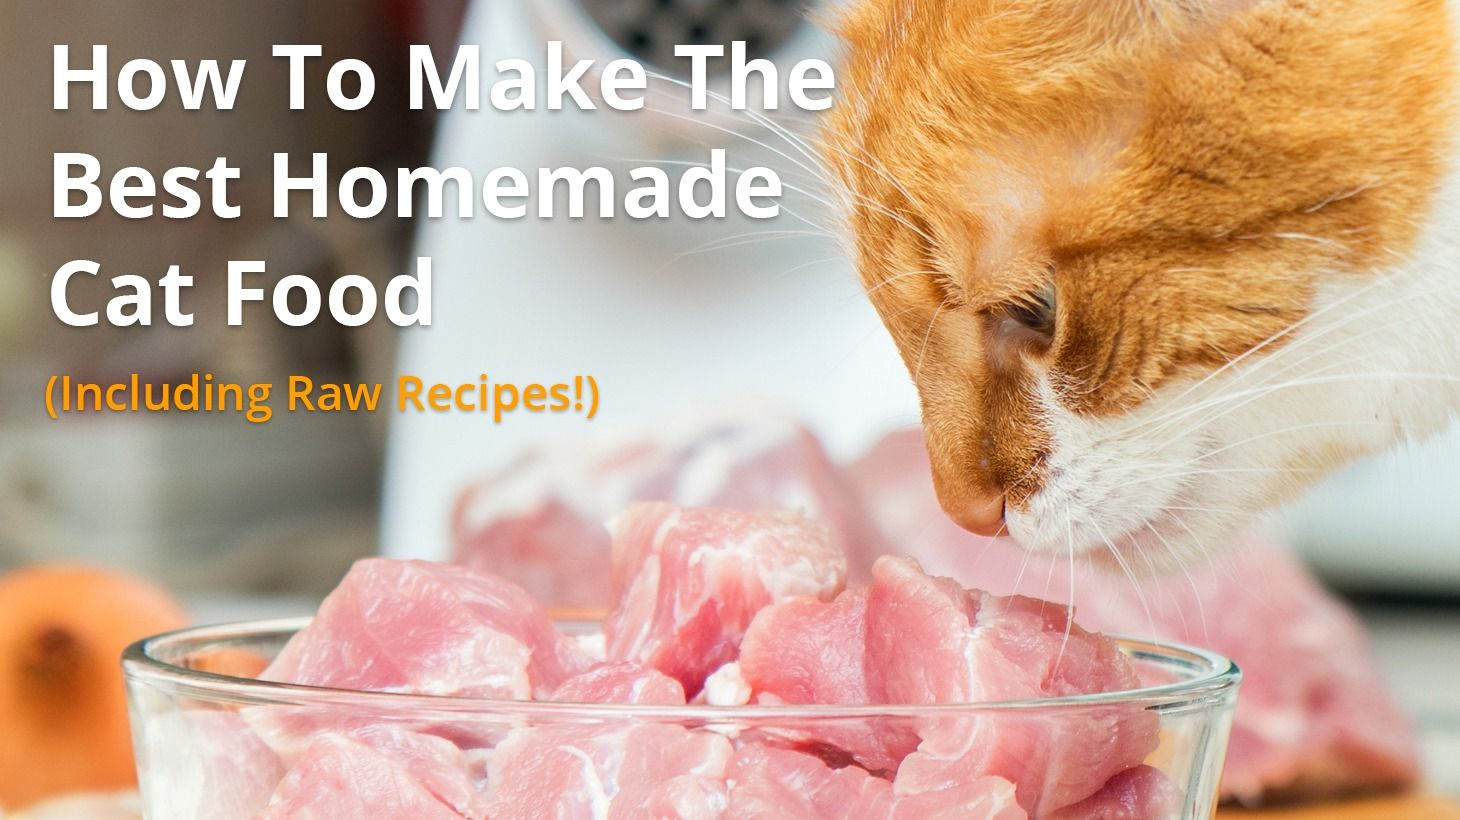 How To Make The Best Homemade Cat Food Including Raw Diet And Cooked Recipes Homemade Cat Food Homemade Raw Cat Food Raw Cat Food Recipes